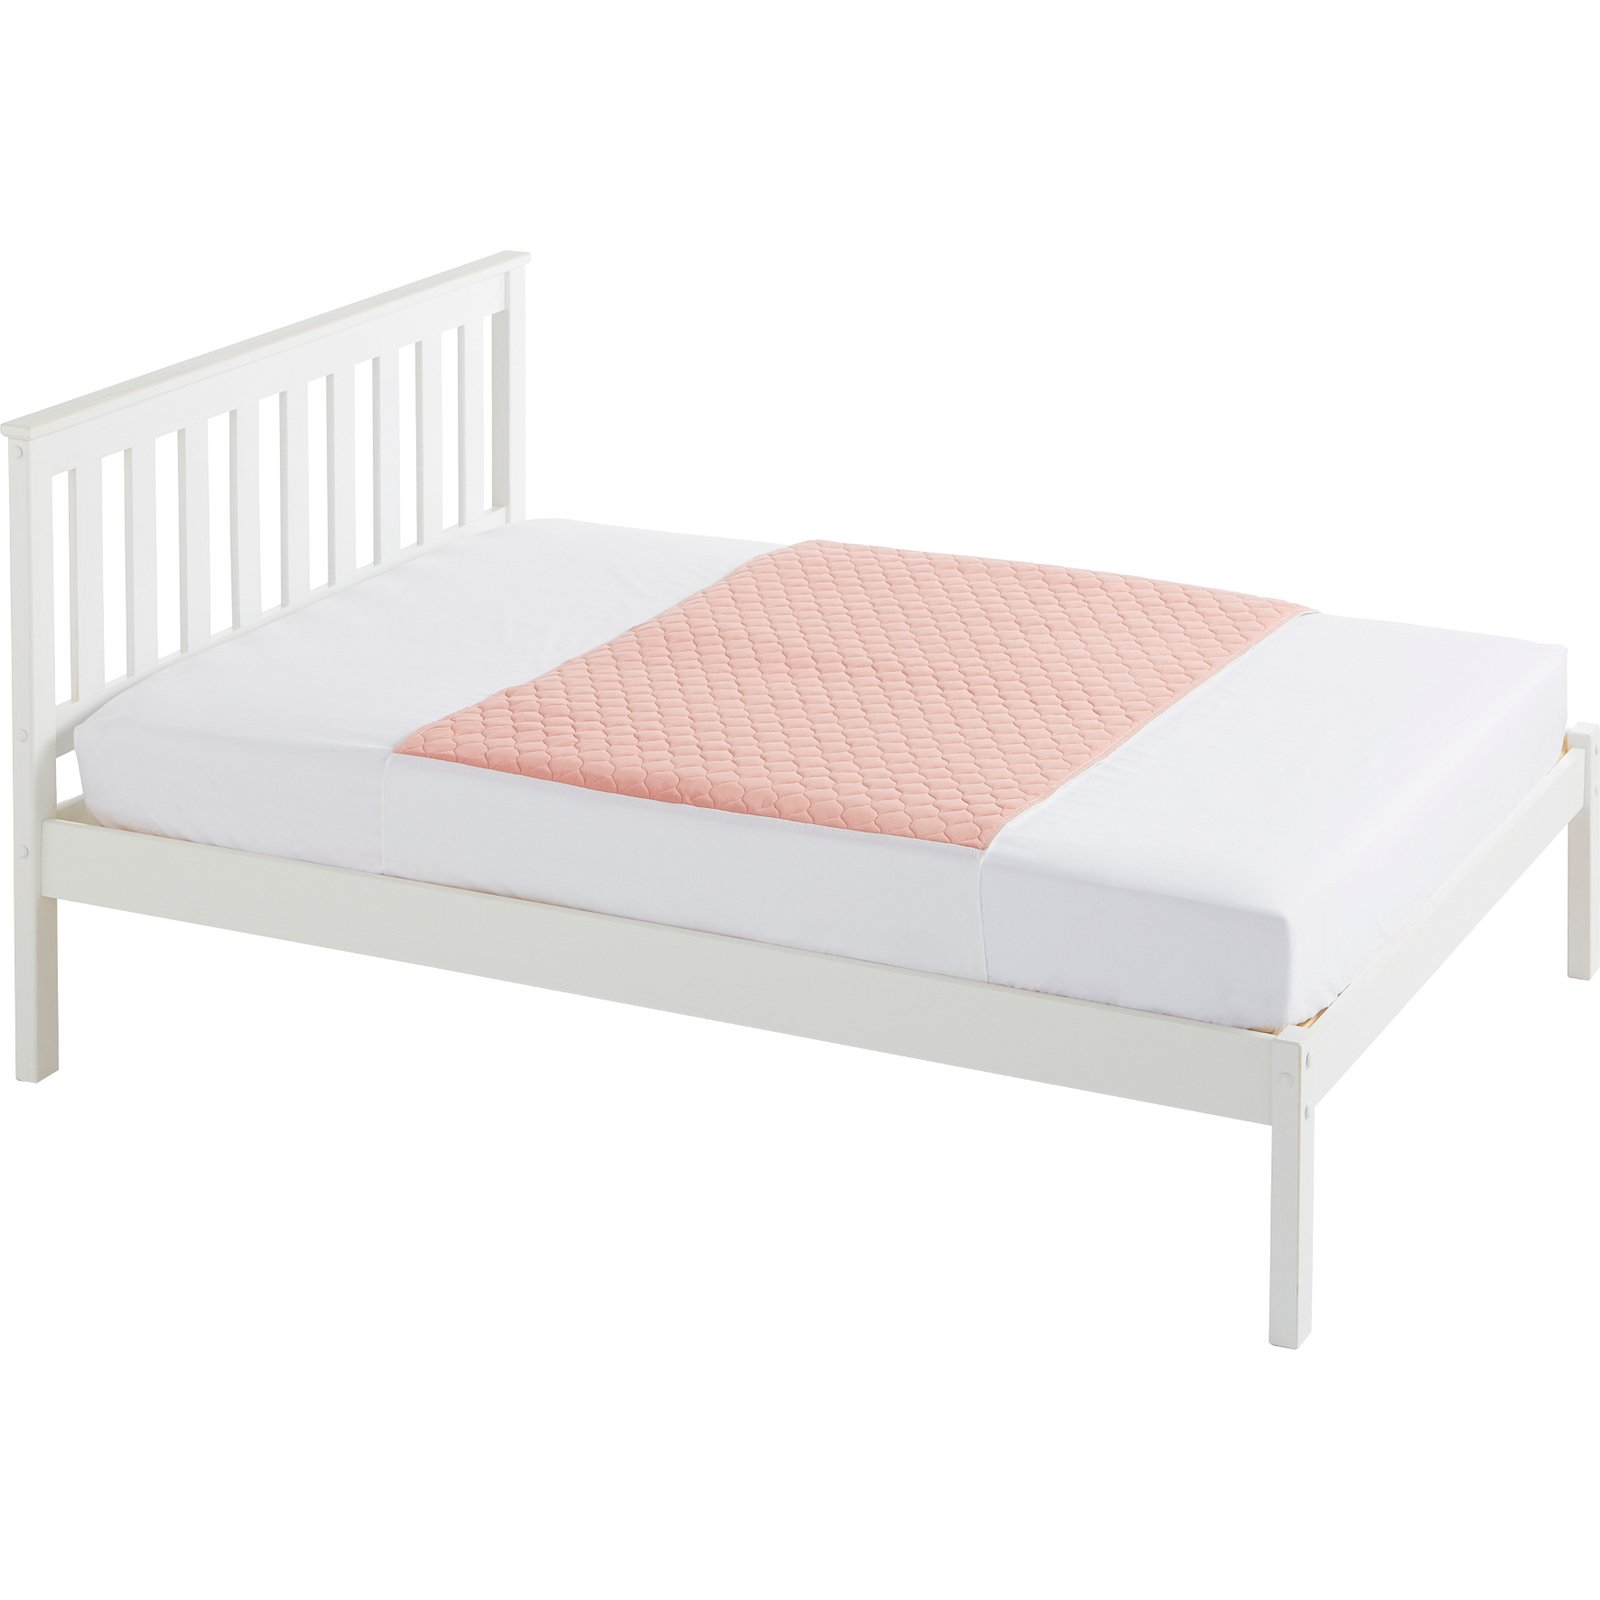 Double Bed 139x91cm Pink